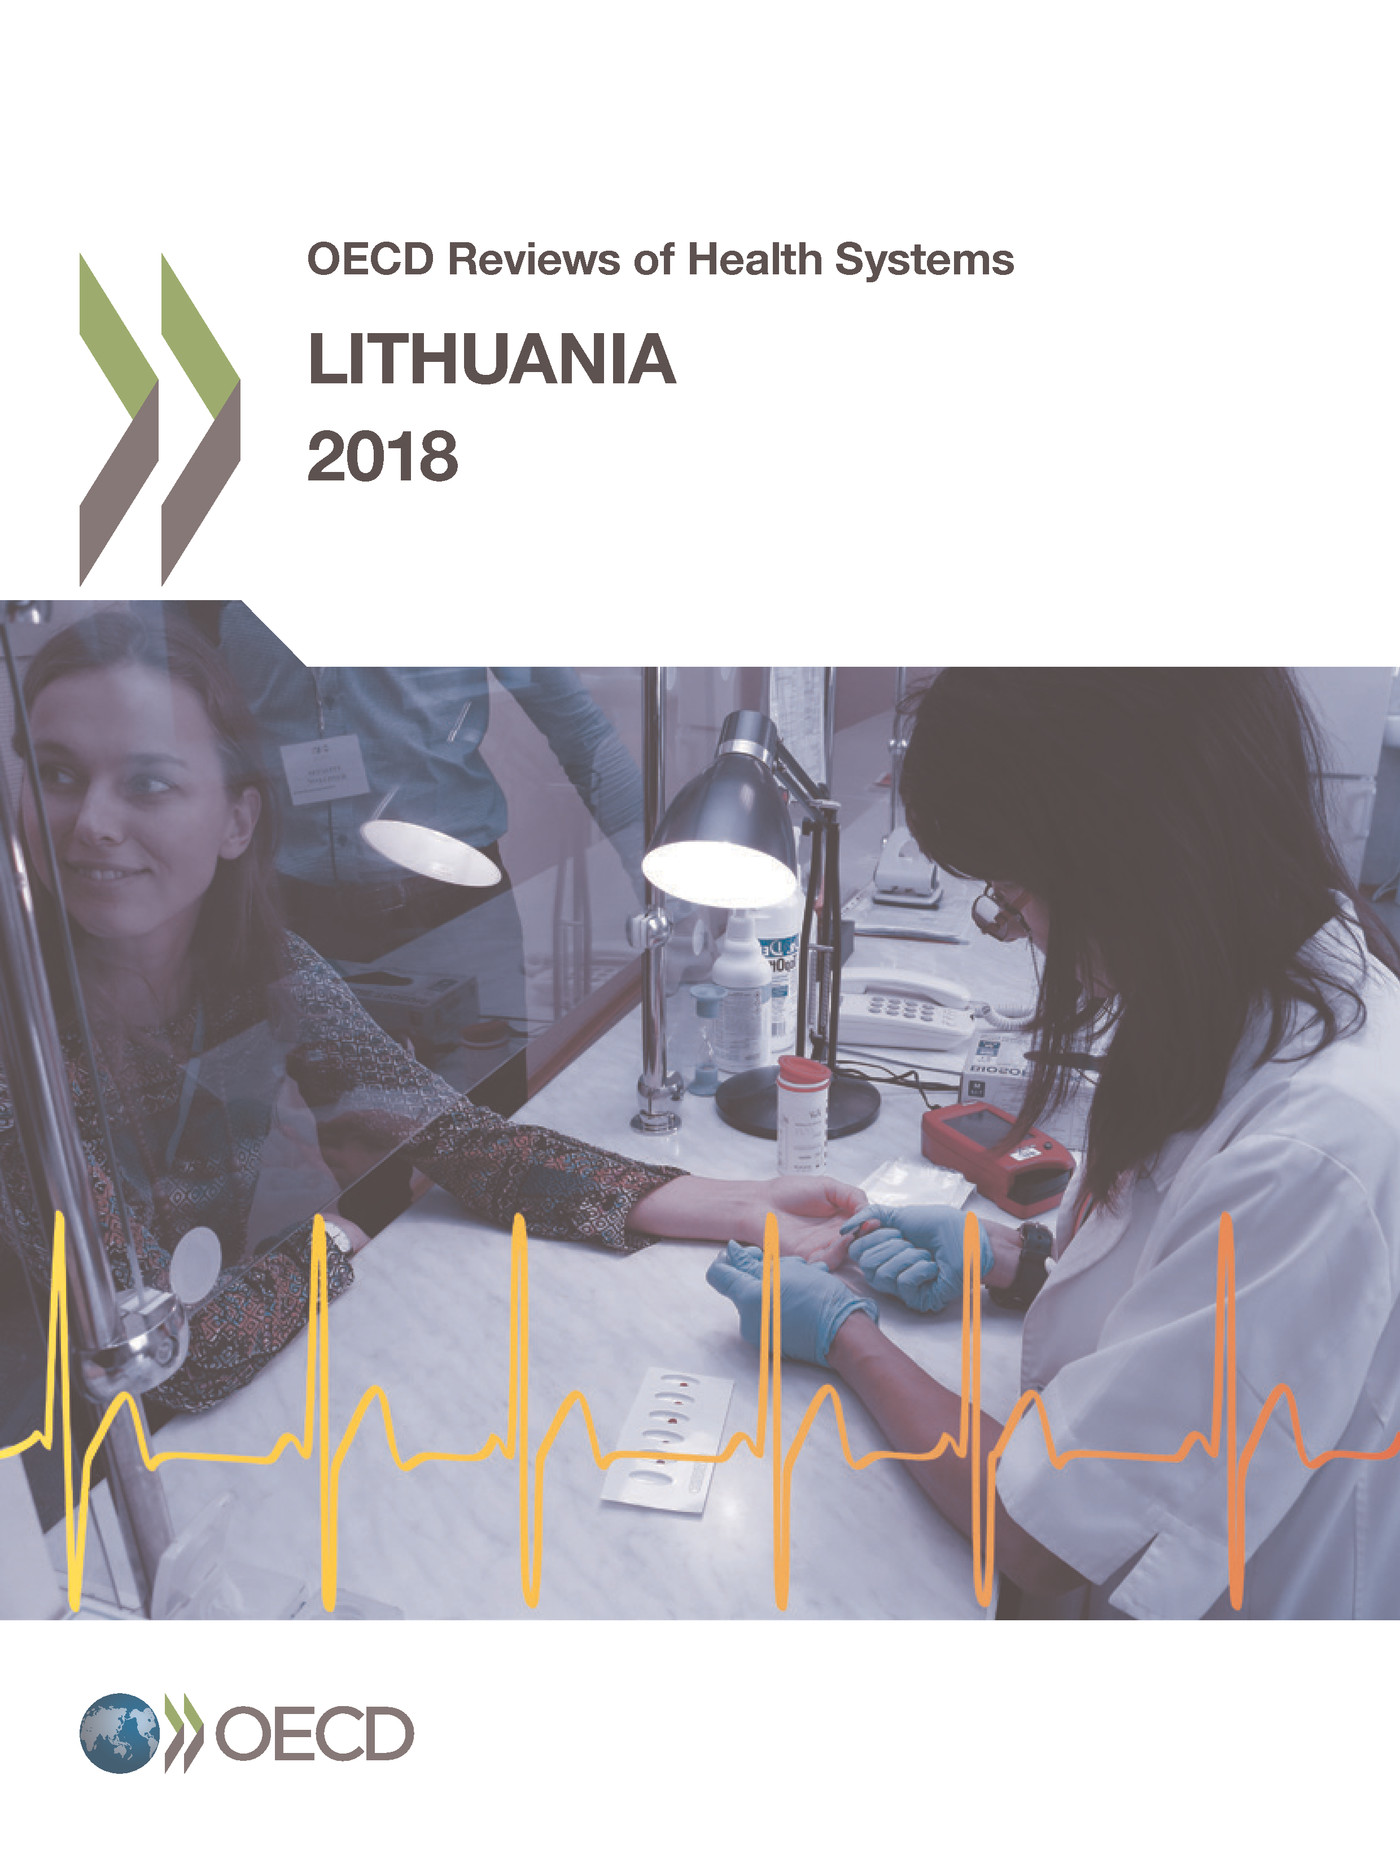 OECD Reviews of Health Systems: Lithuania 2018 De  Collectif - OCDE / OECD